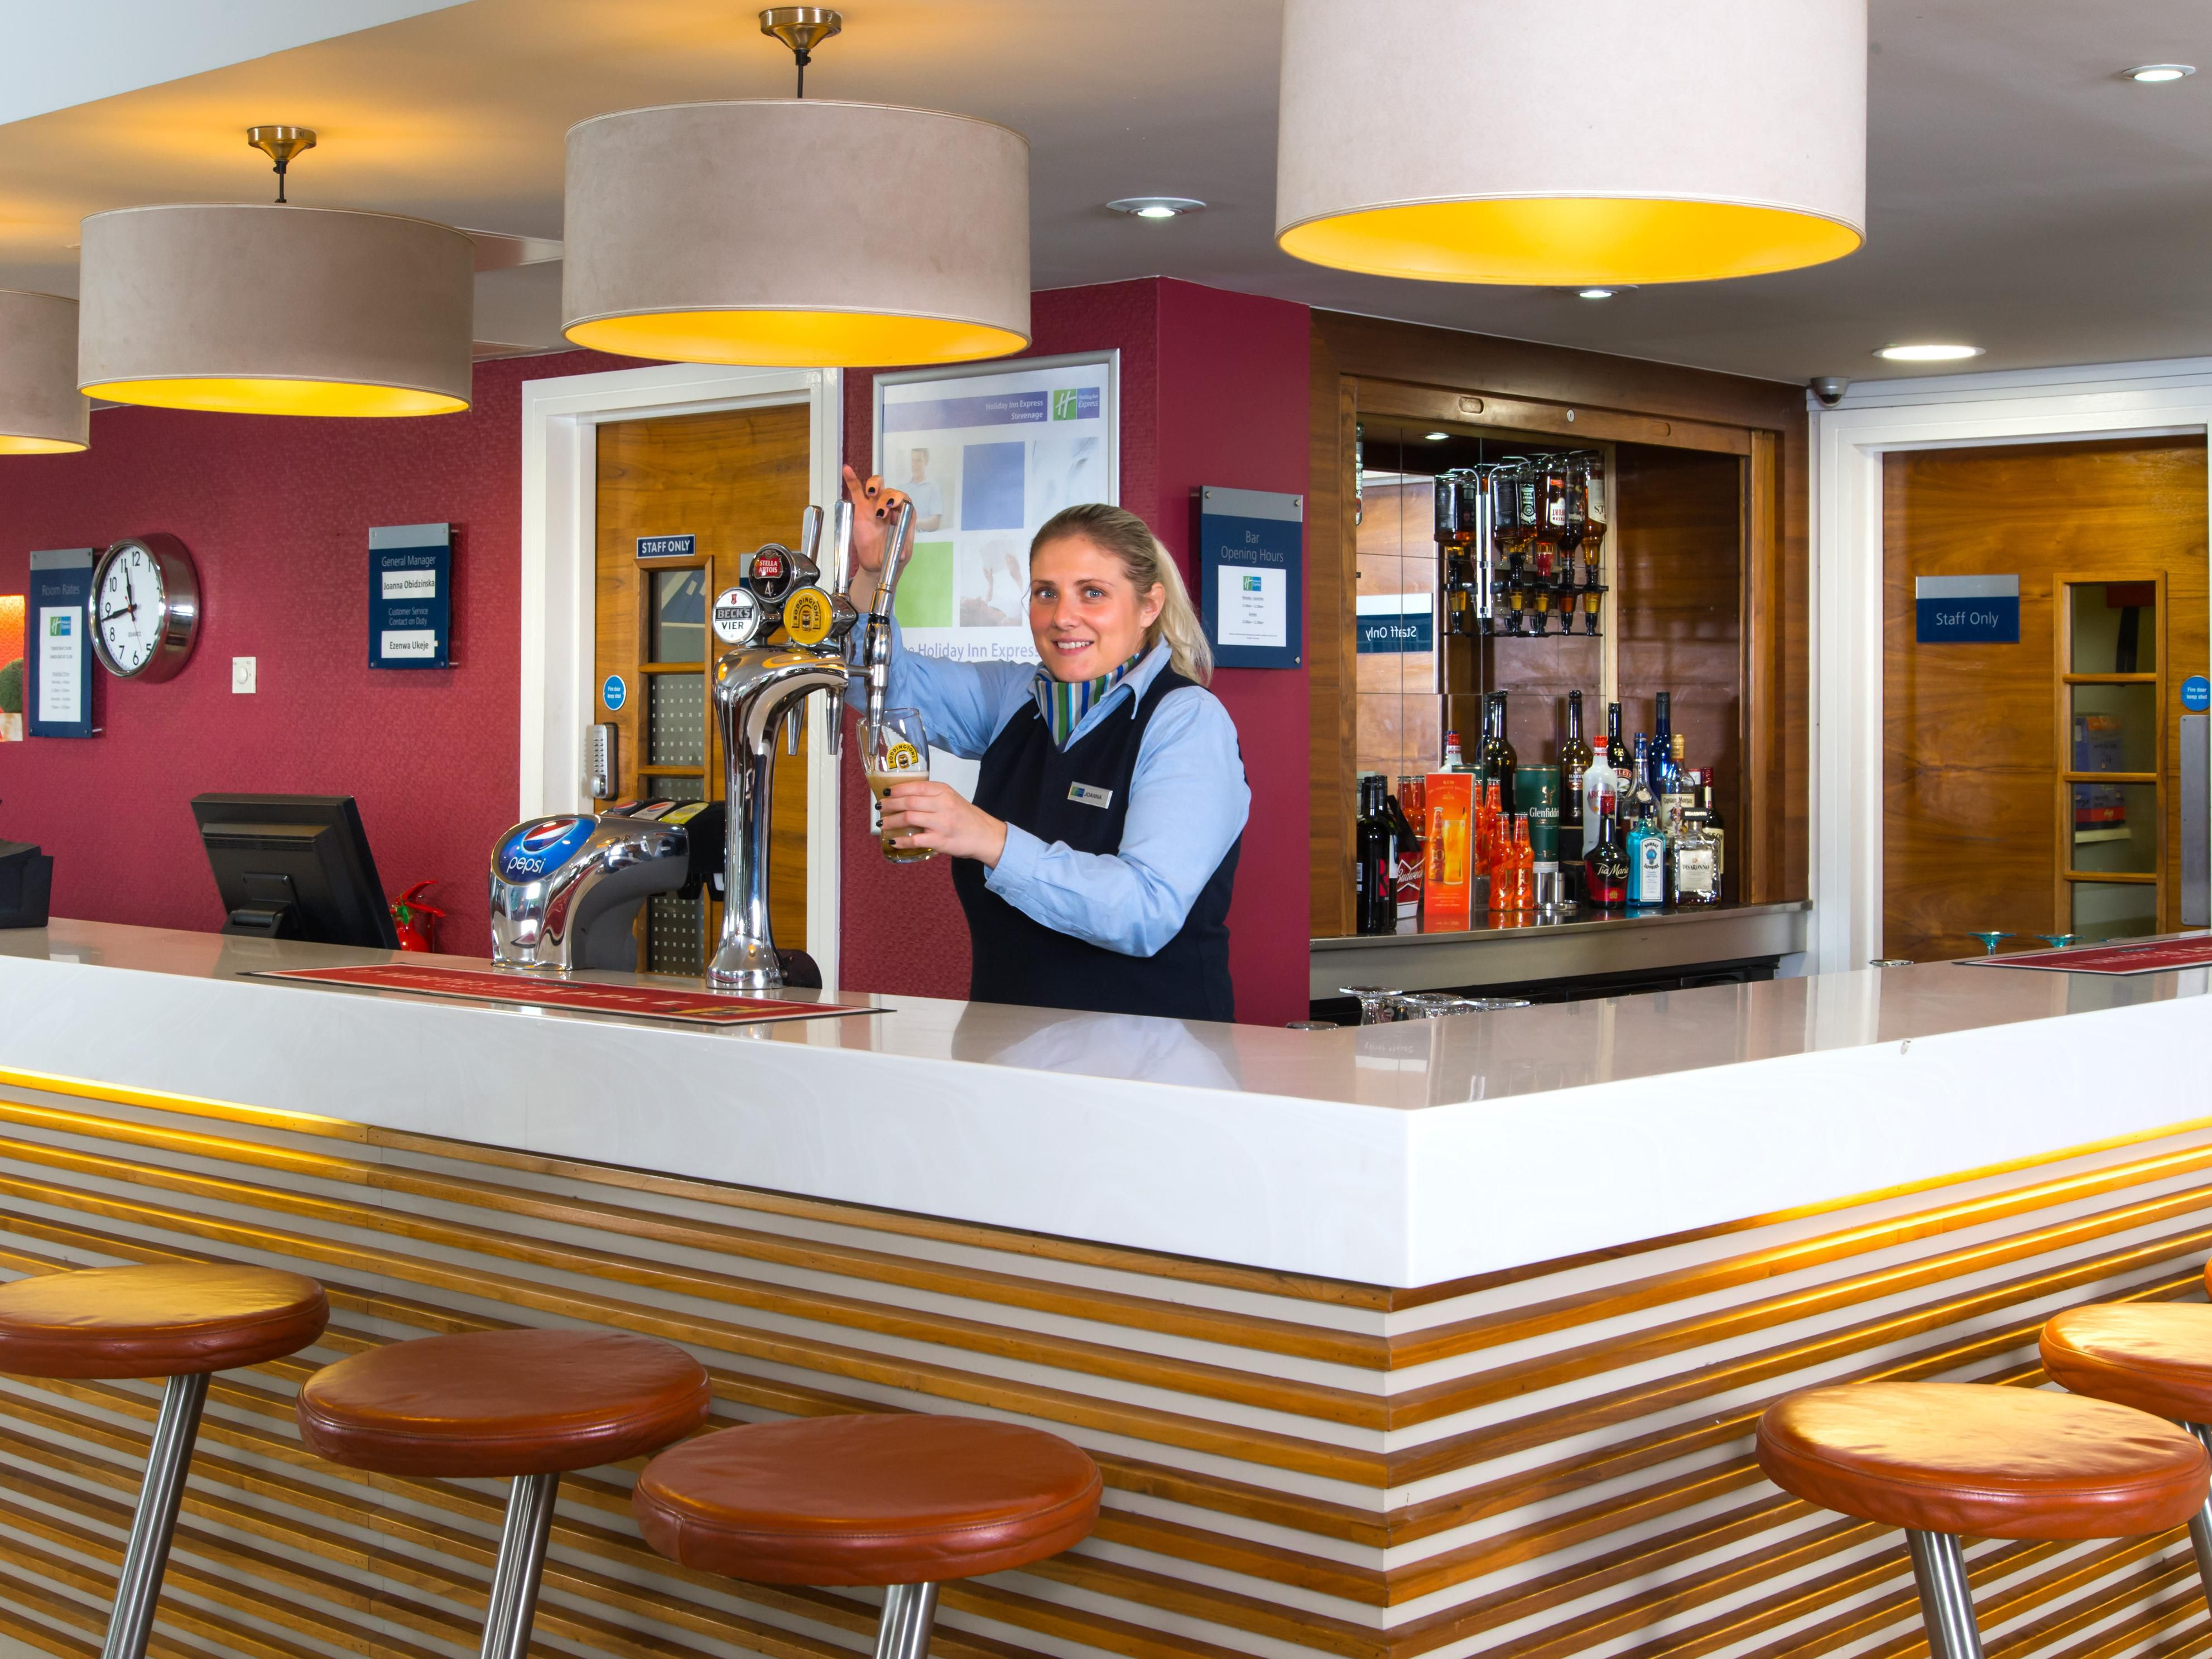 Treat yourself to a refreshing drink from our bar